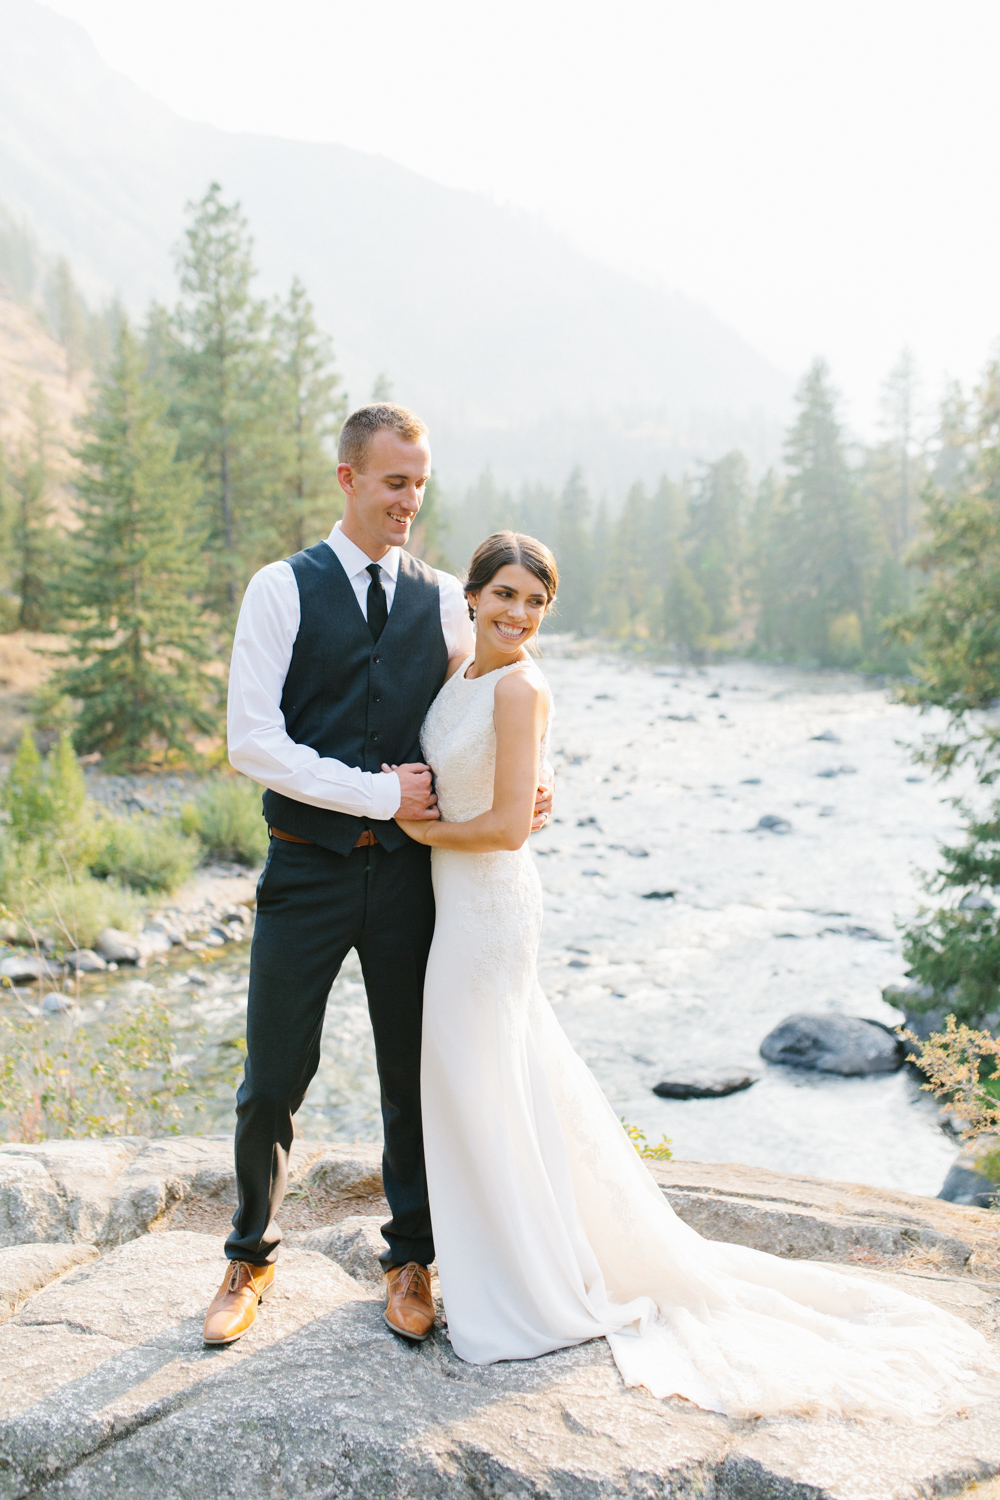 Grey and White Wedding in the Mountains of Leavenworth, Washington | Sleeping Lady | Classic and Timeless Wedding | VSCO | Stunning Mountain Top Bride and Groom Portraits on the Icicle River.jpg-3310.jpg